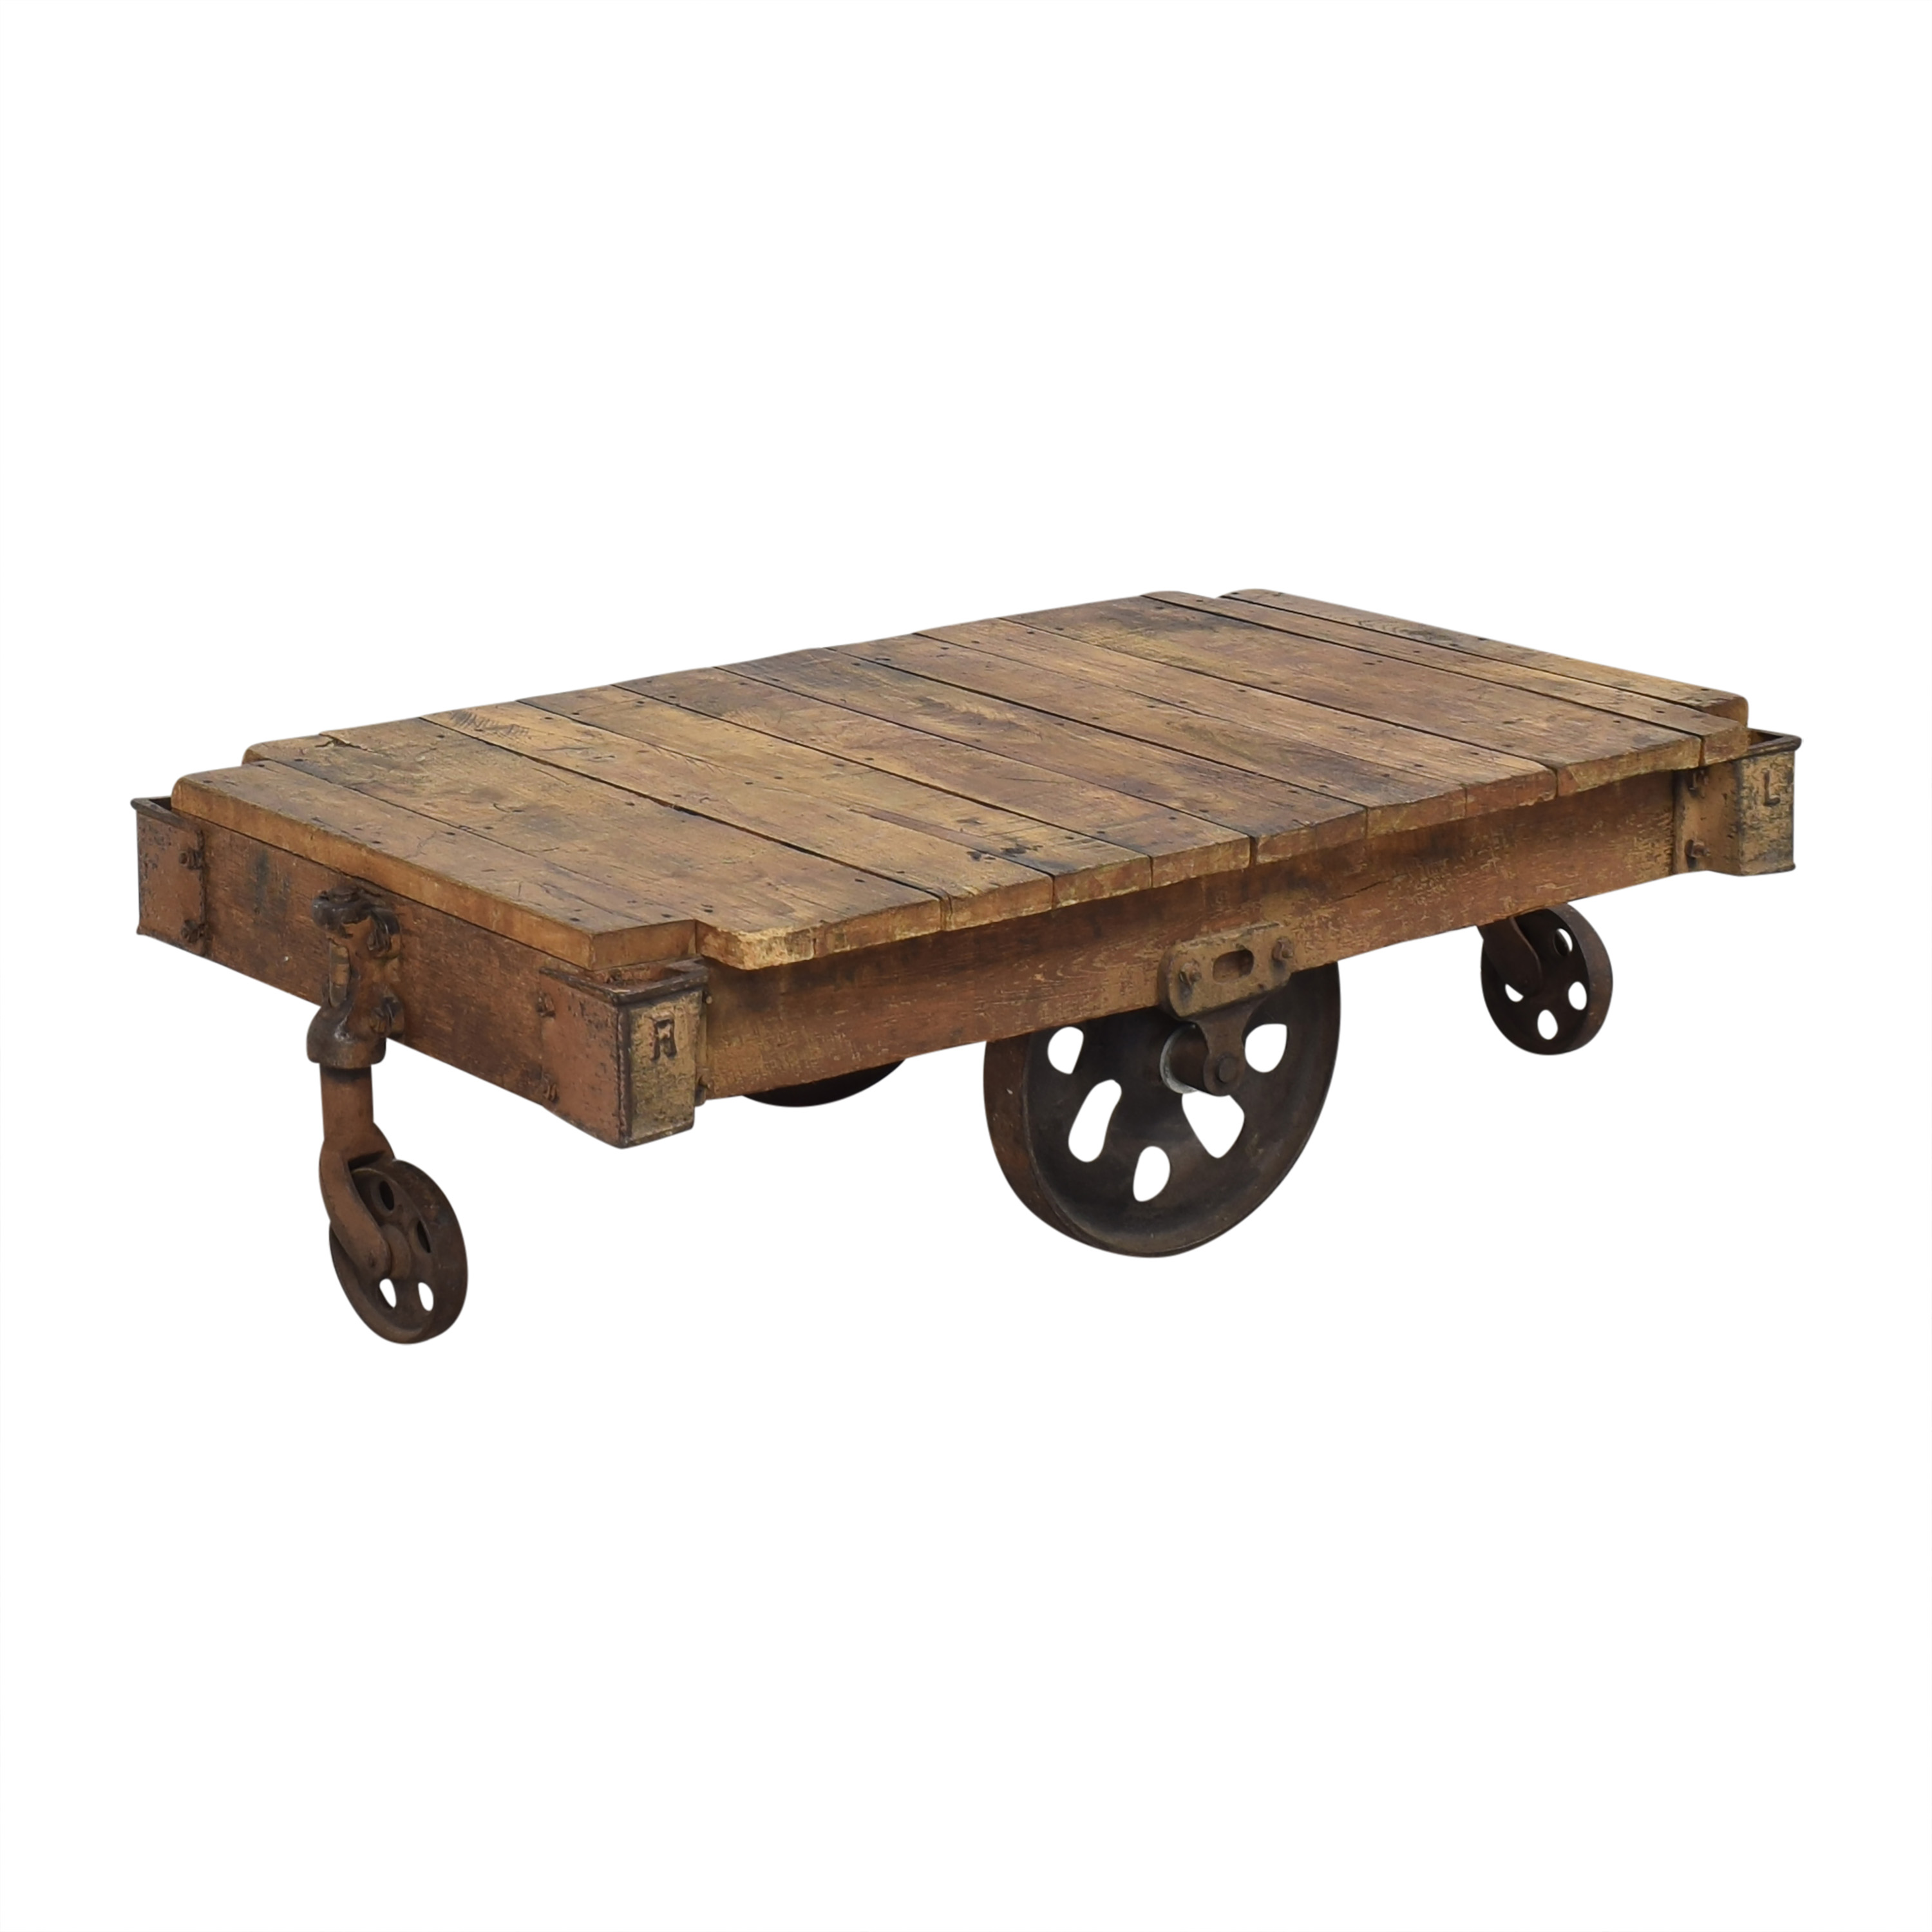 Vintage Industrial Rolling Cart Coffee Table ma